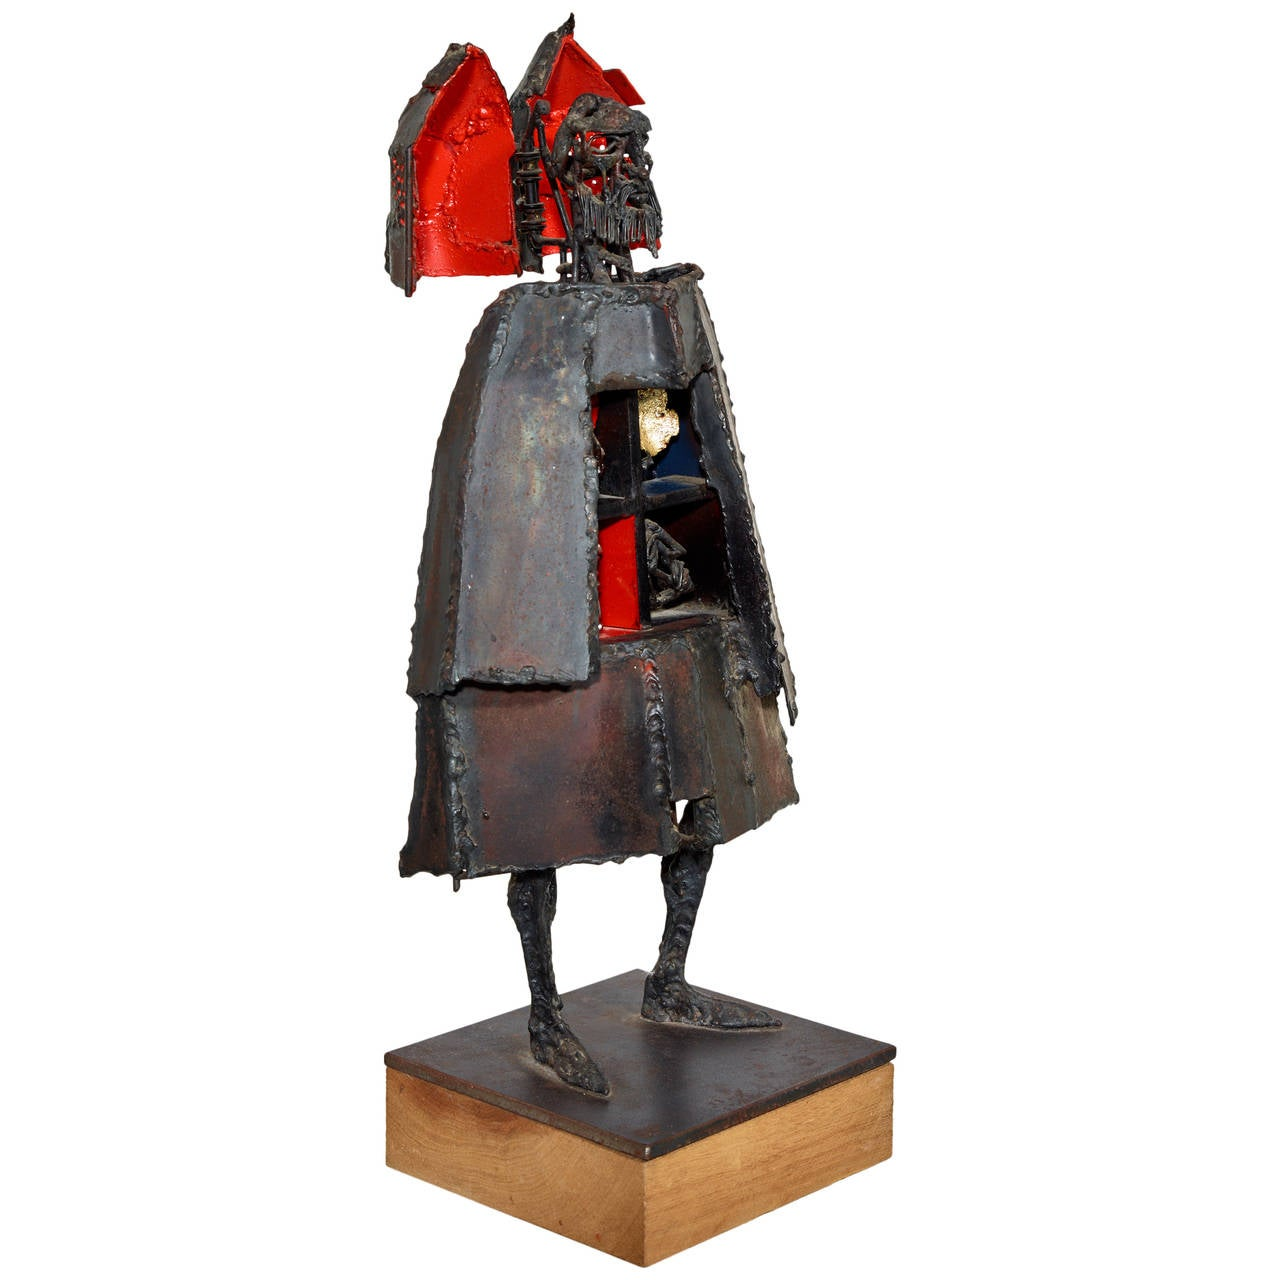 Bob Fowler Welded Sculpture, Signed, 1980s